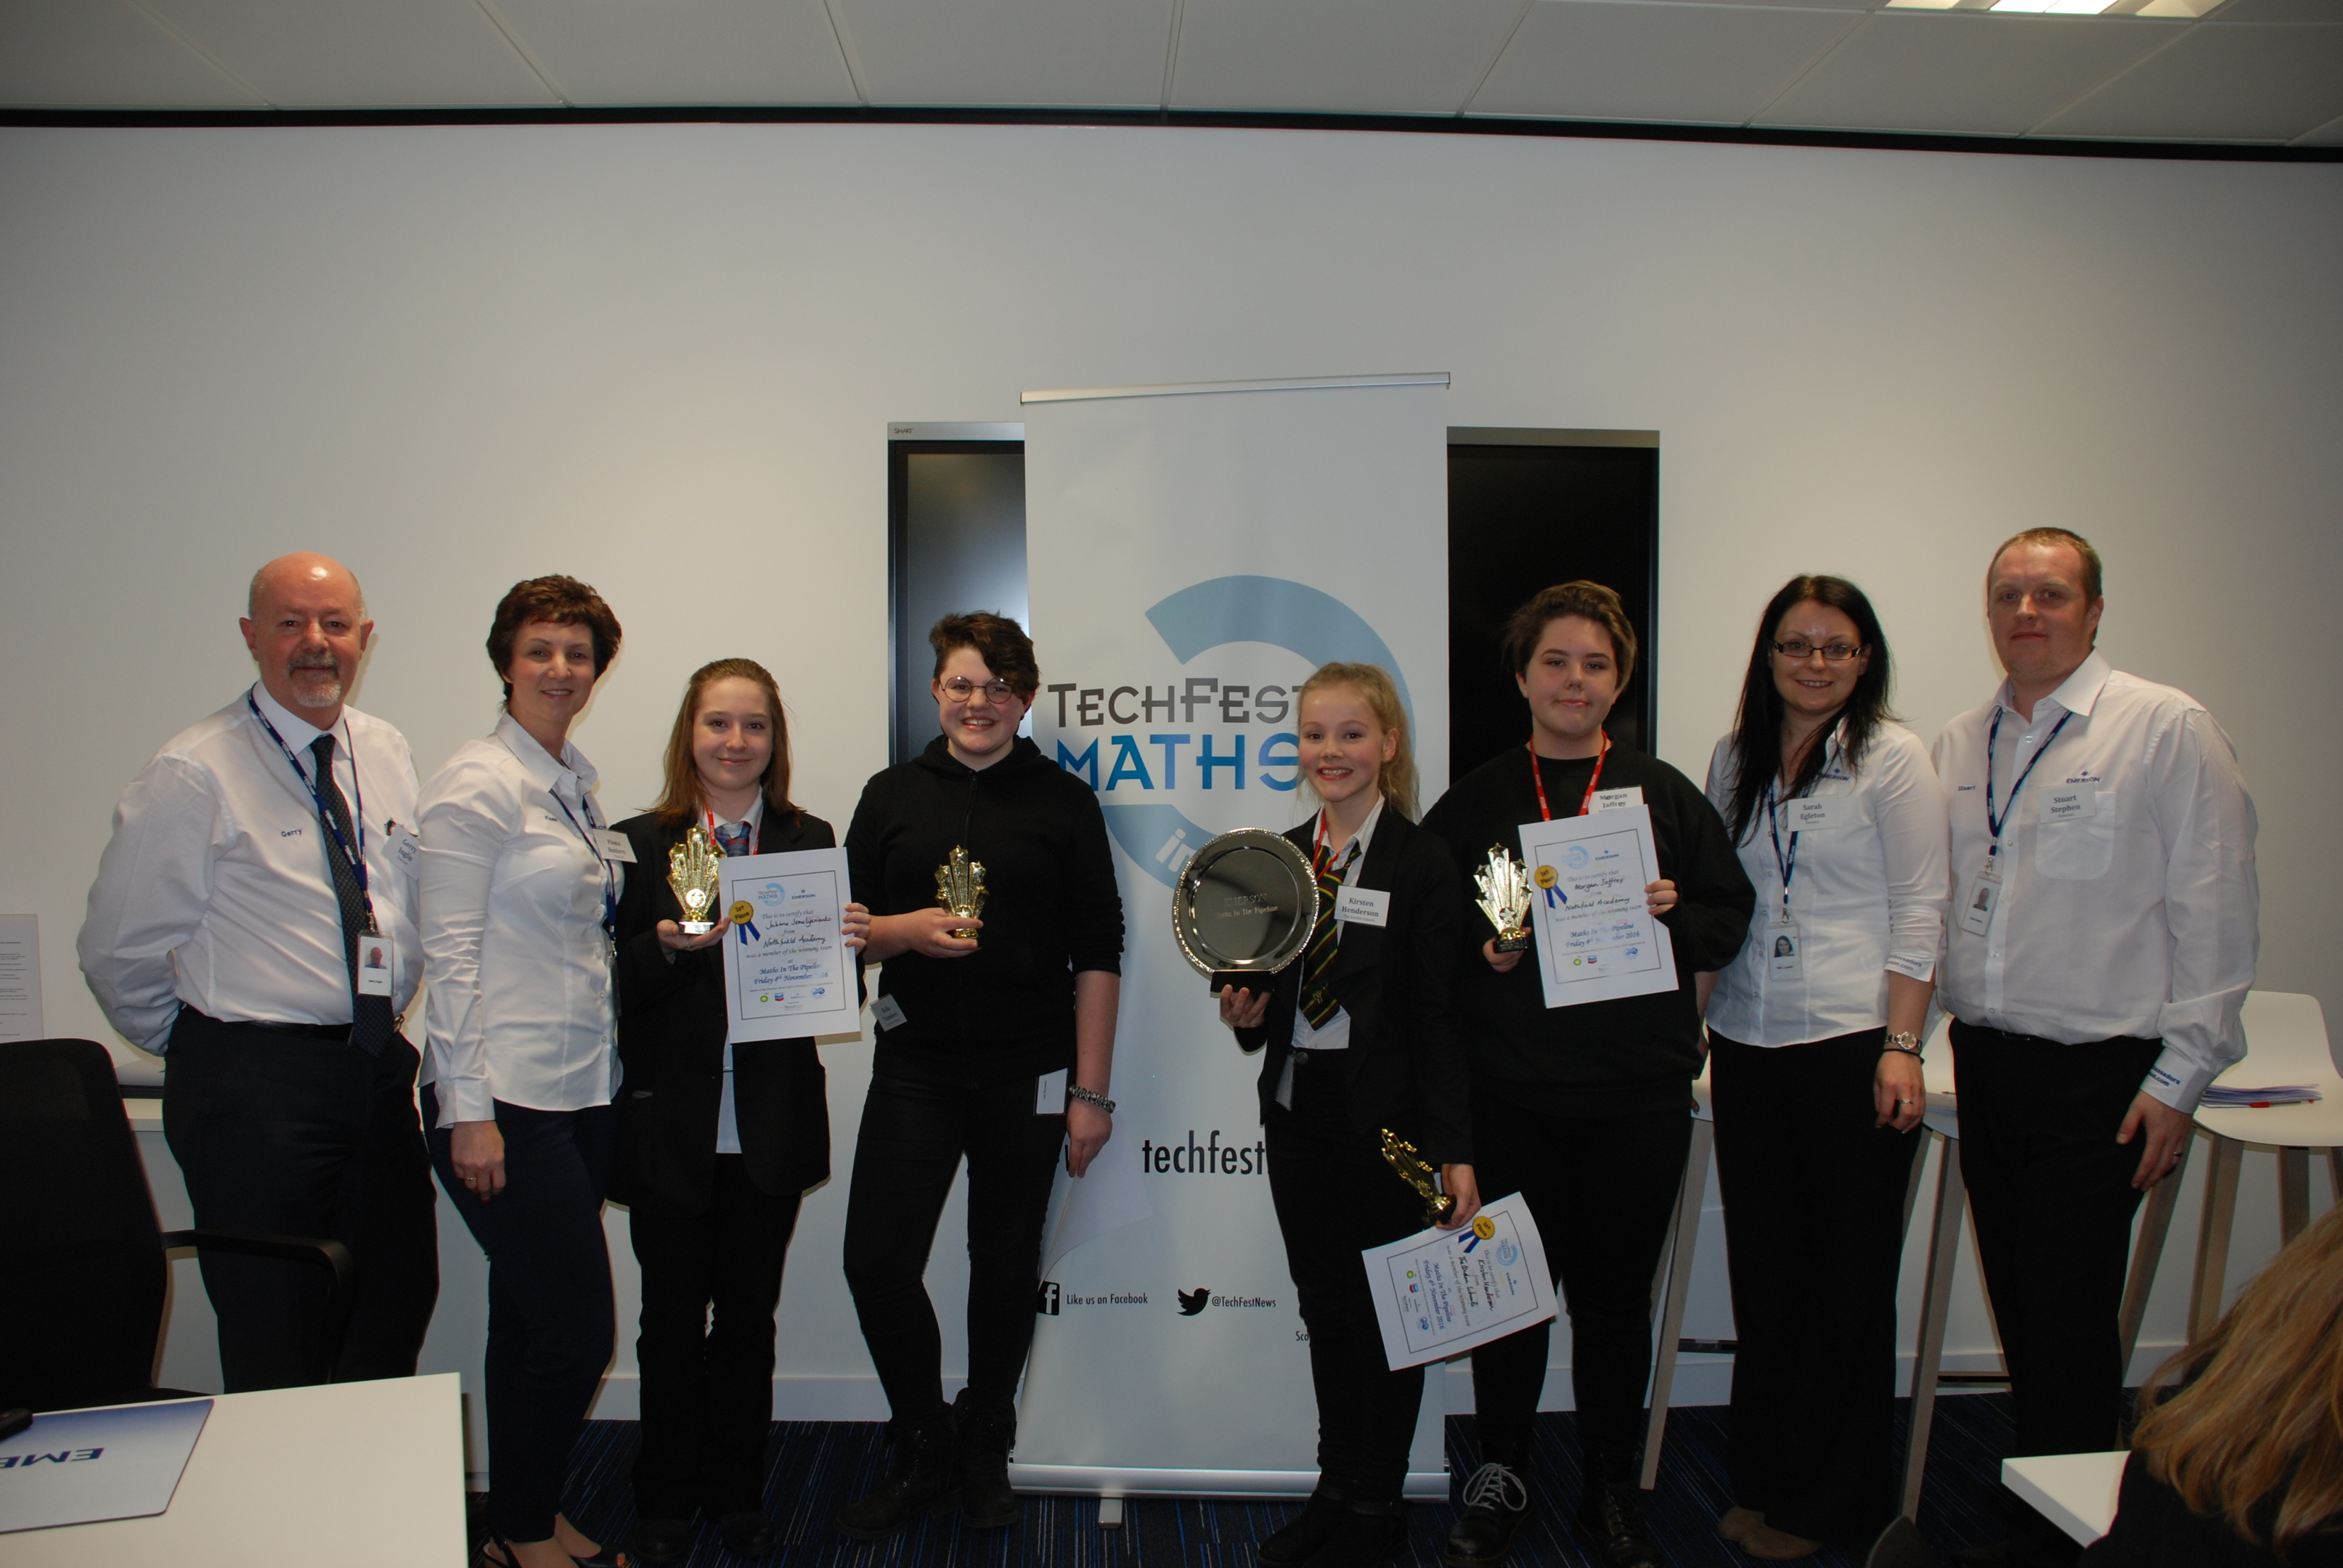 Maths in the Pipeline business challenge winners with Emerson STEM Ambassadors.